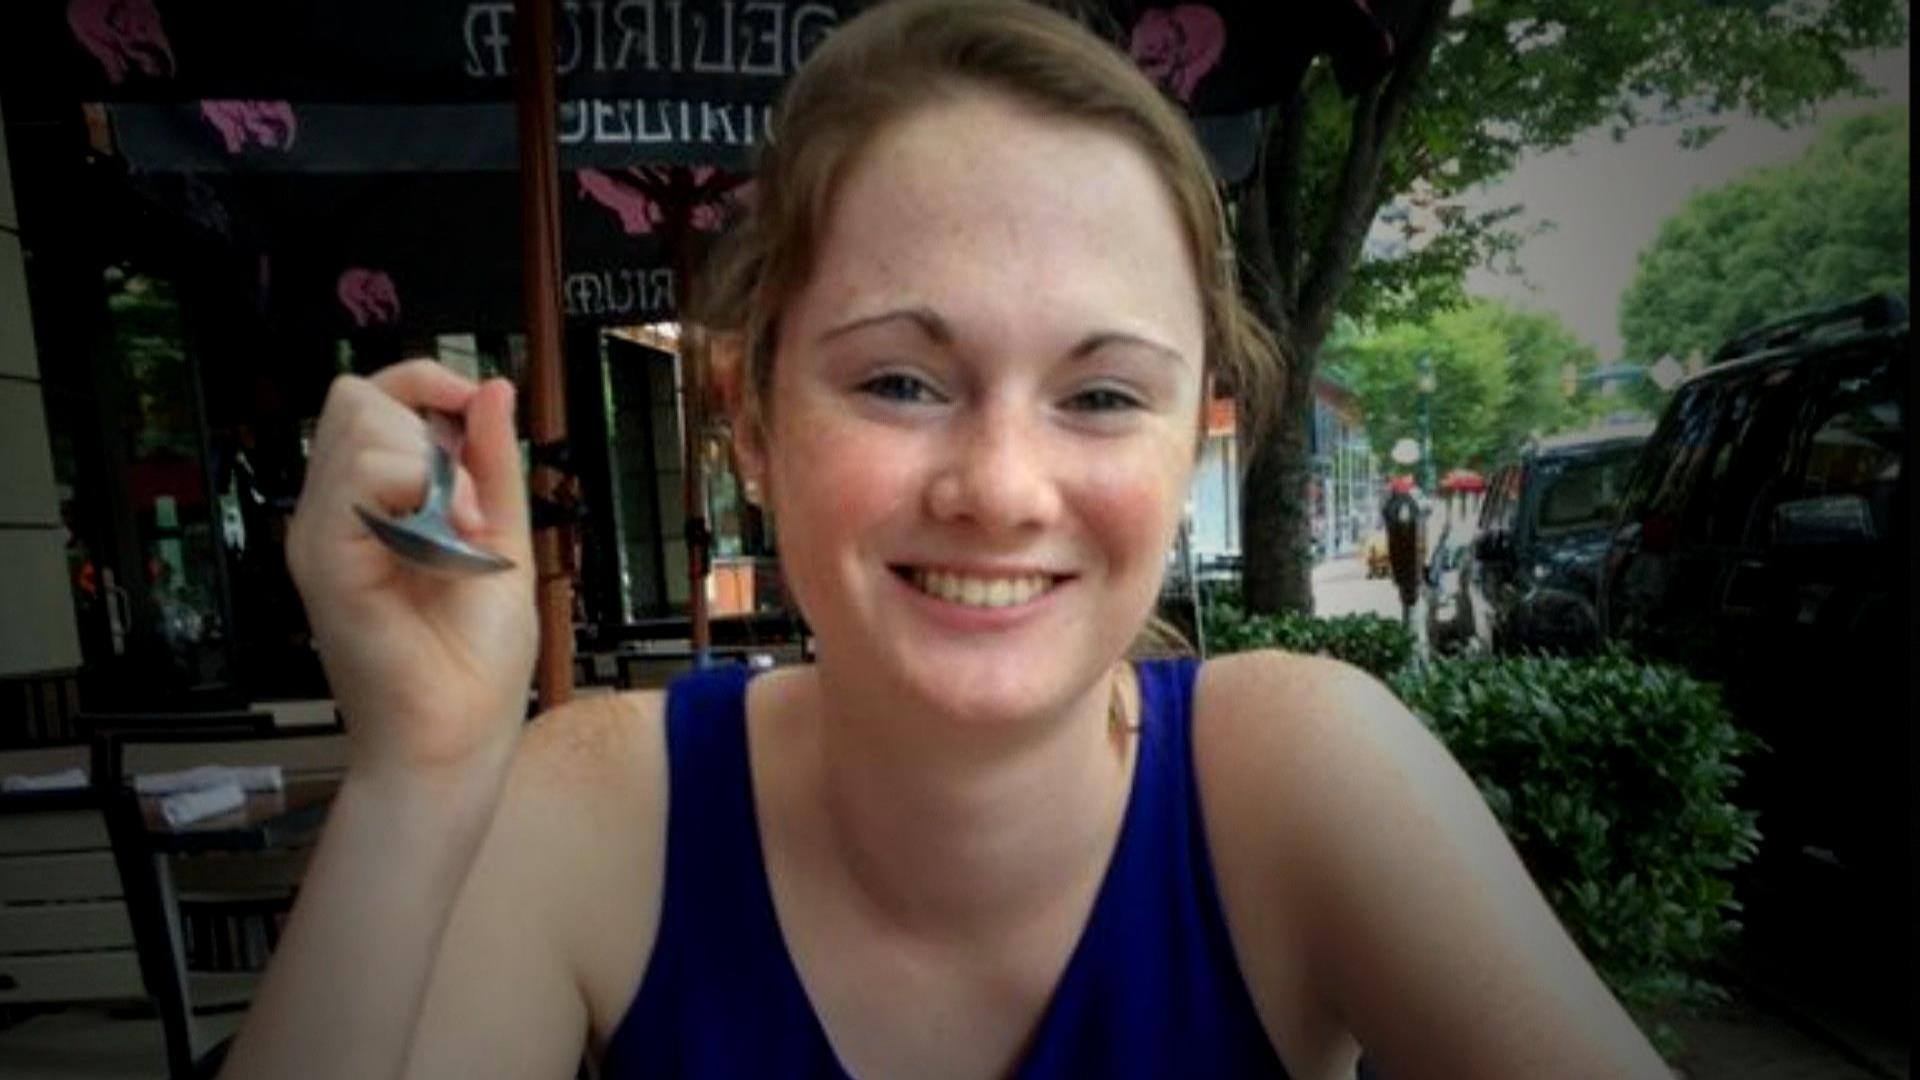 Remains of missing University of Virginia sophomore Hannah Graham found on abandoned property